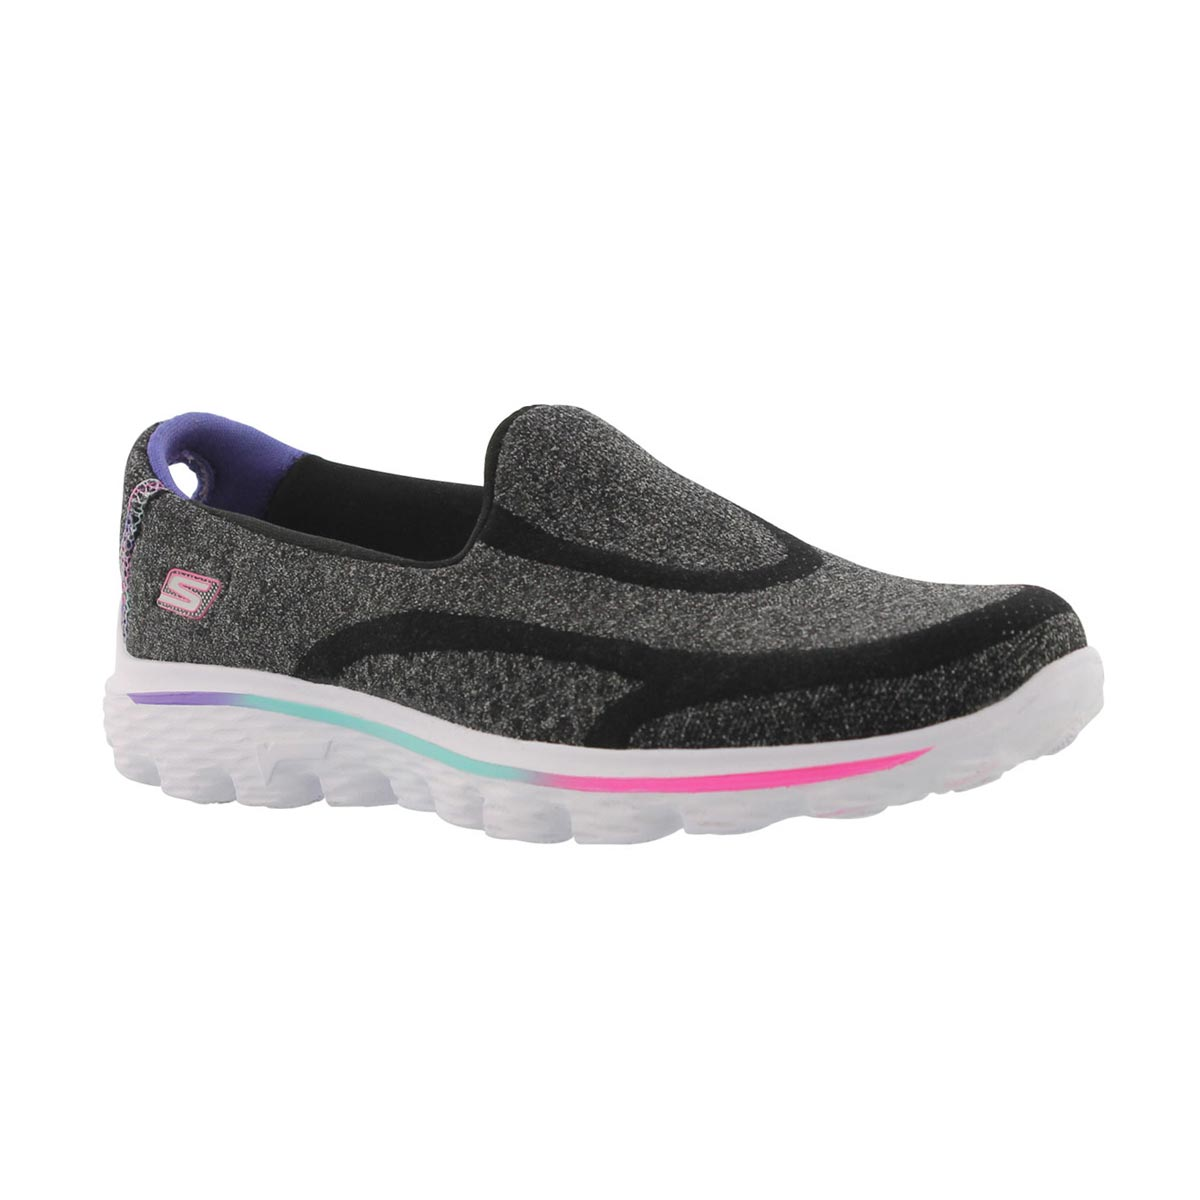 Fl�neurs GOwalk 2 Super Sock, filles